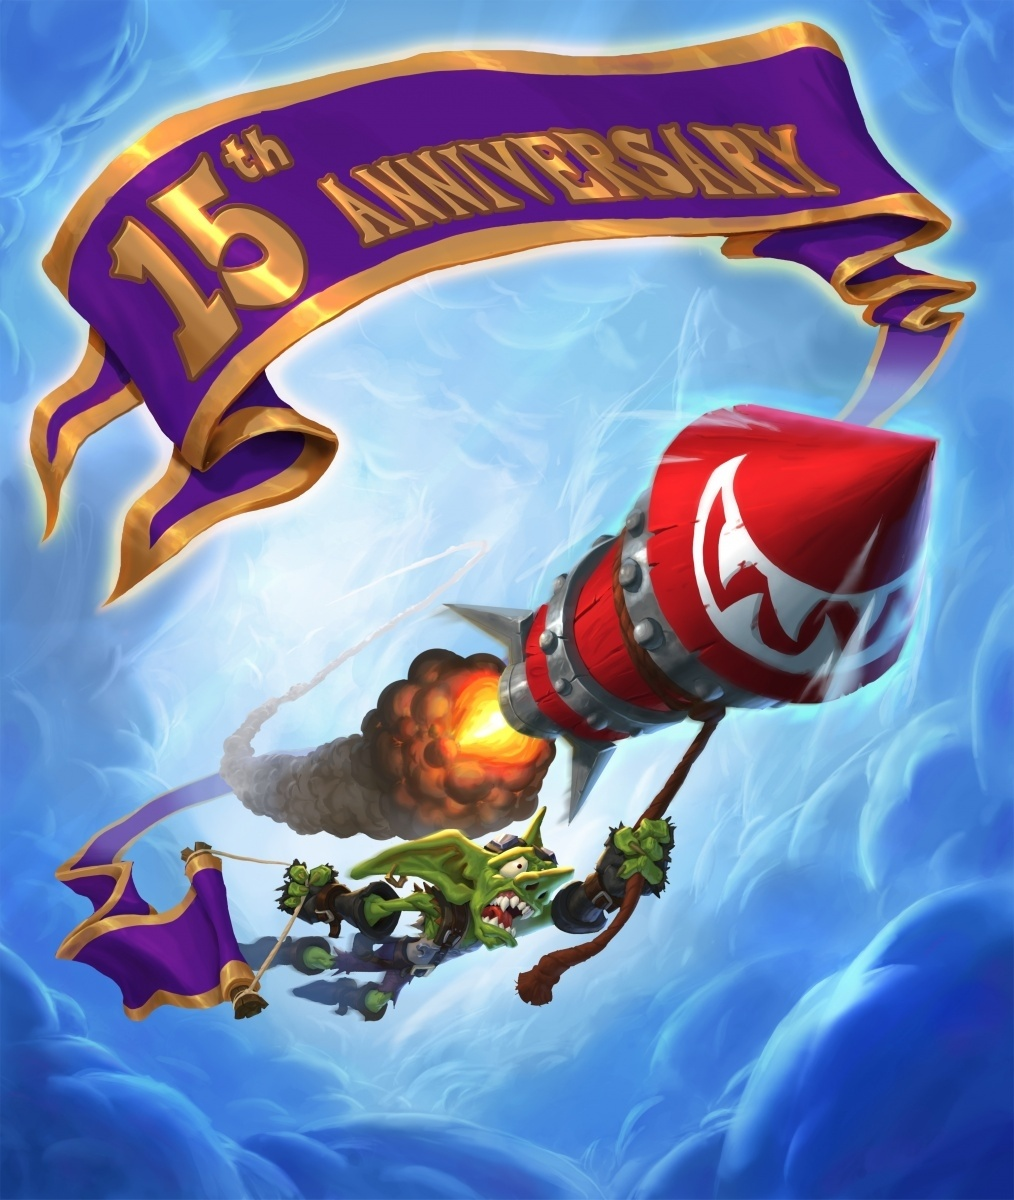 We're feeling festive this holiday season so we have a special limited merch drop celebrating Wowhead's 15th anniversary as well as new collectible enamel pins by @tsepish!  https://t.co/ftvIy4oNUS https://t.co/iOwl8lLGhT